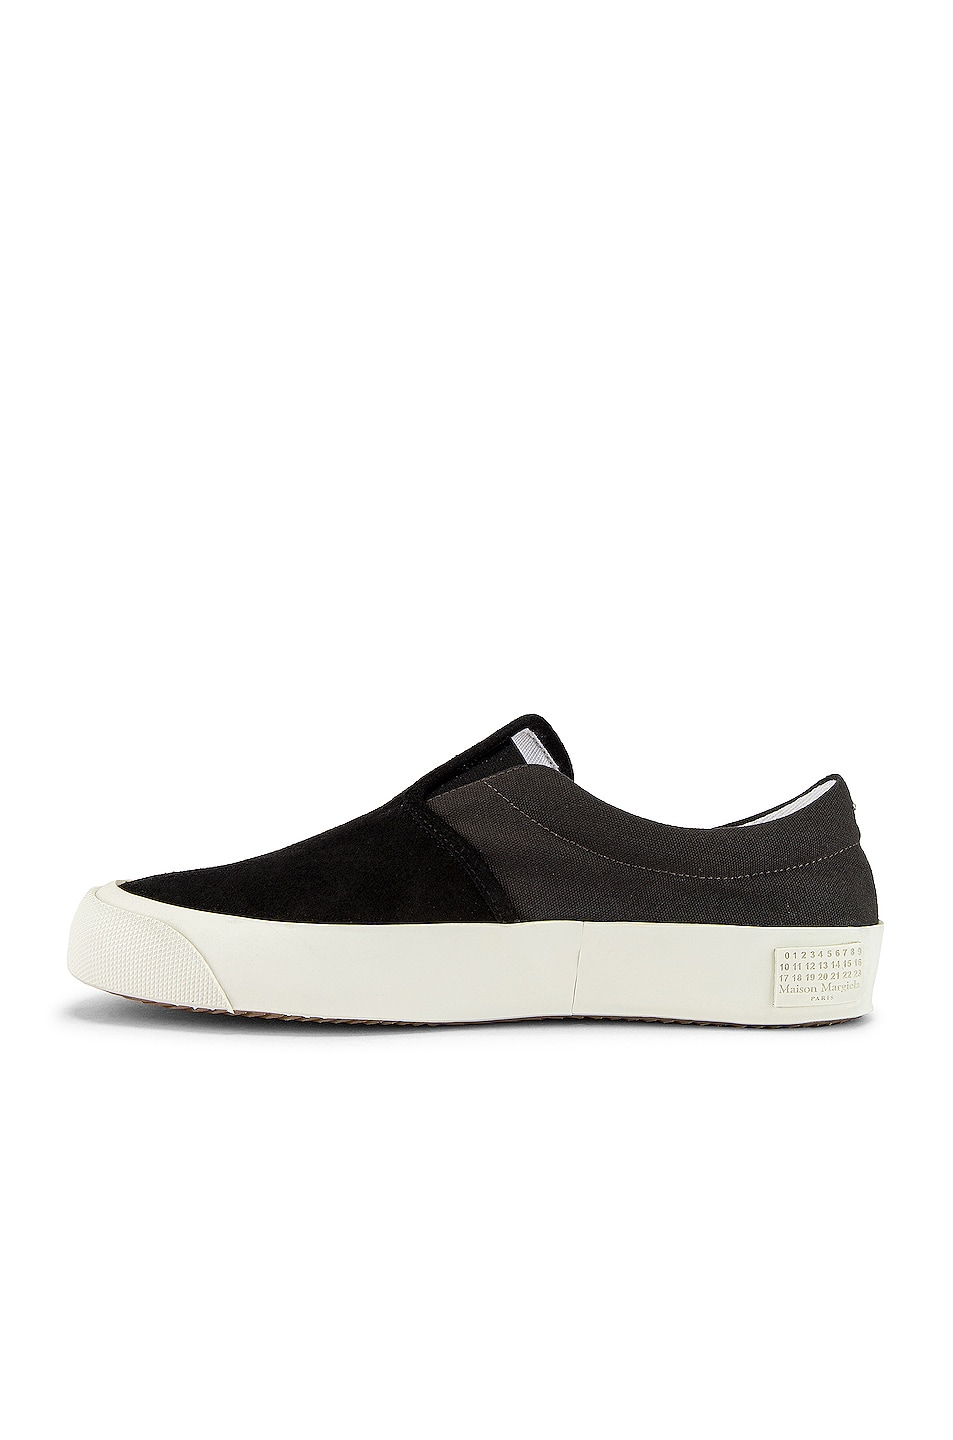 Image 5 of Maison Margiela Hurricane Slip On in Smoke 91 & Neroy